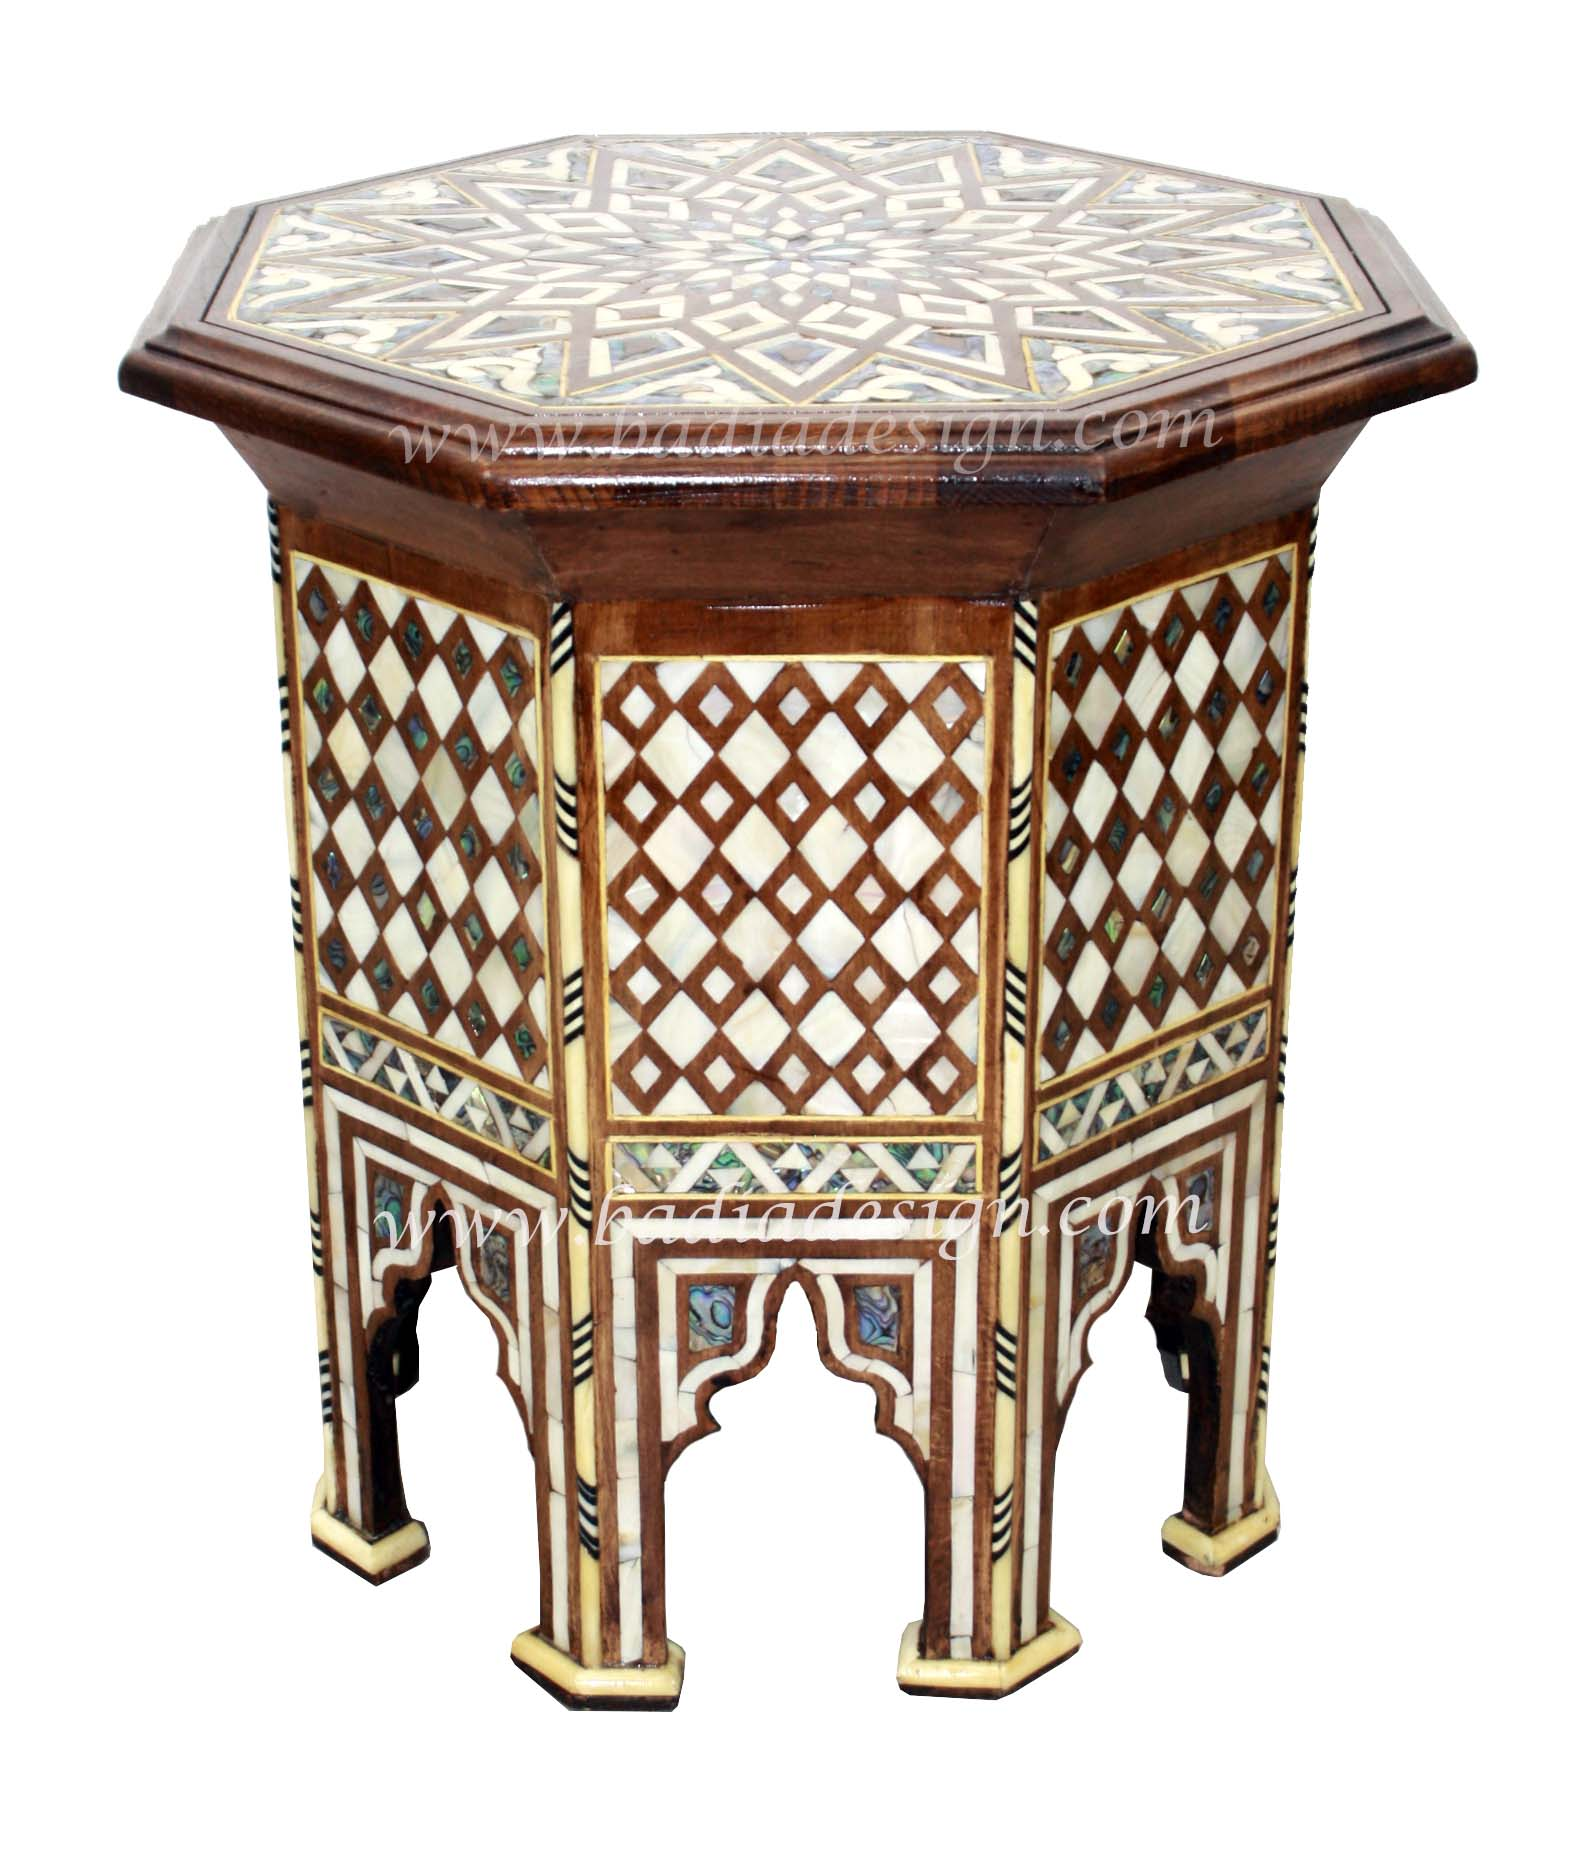 syrian-design-side-table-mop-st055-1.jpg